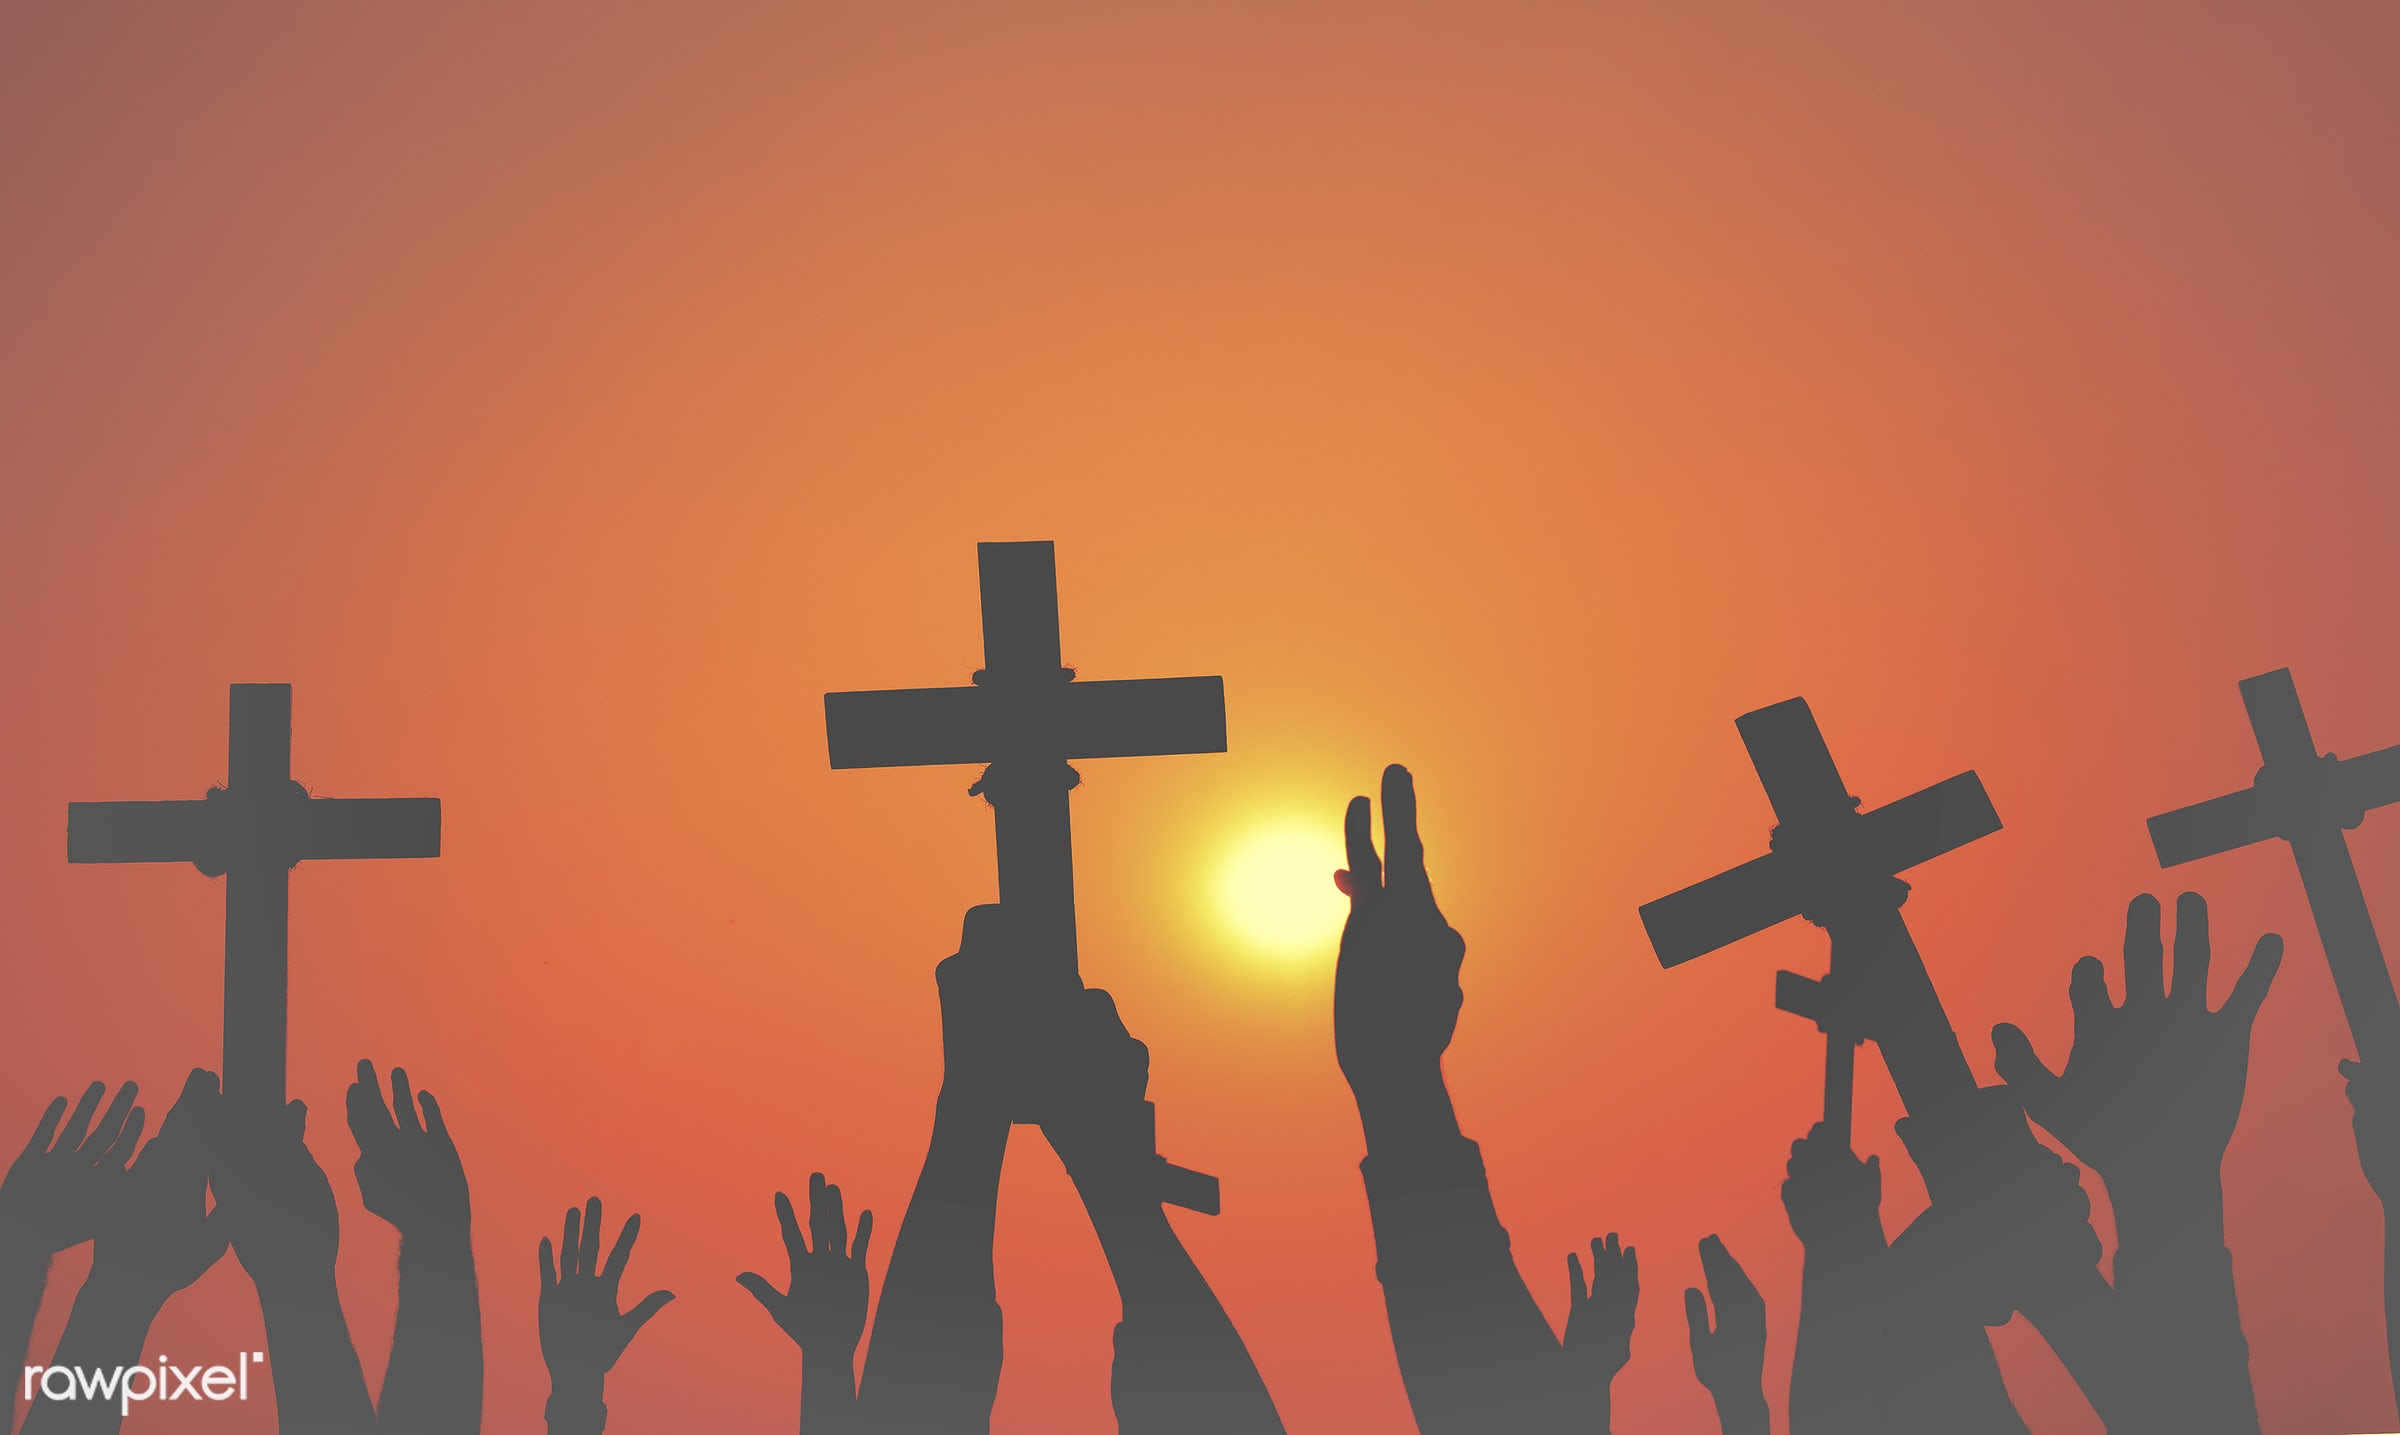 arm raised, aspiration, bowing, catholicism, cemetery, christianity, concepts and ideas, connect, connection, cross, cross...